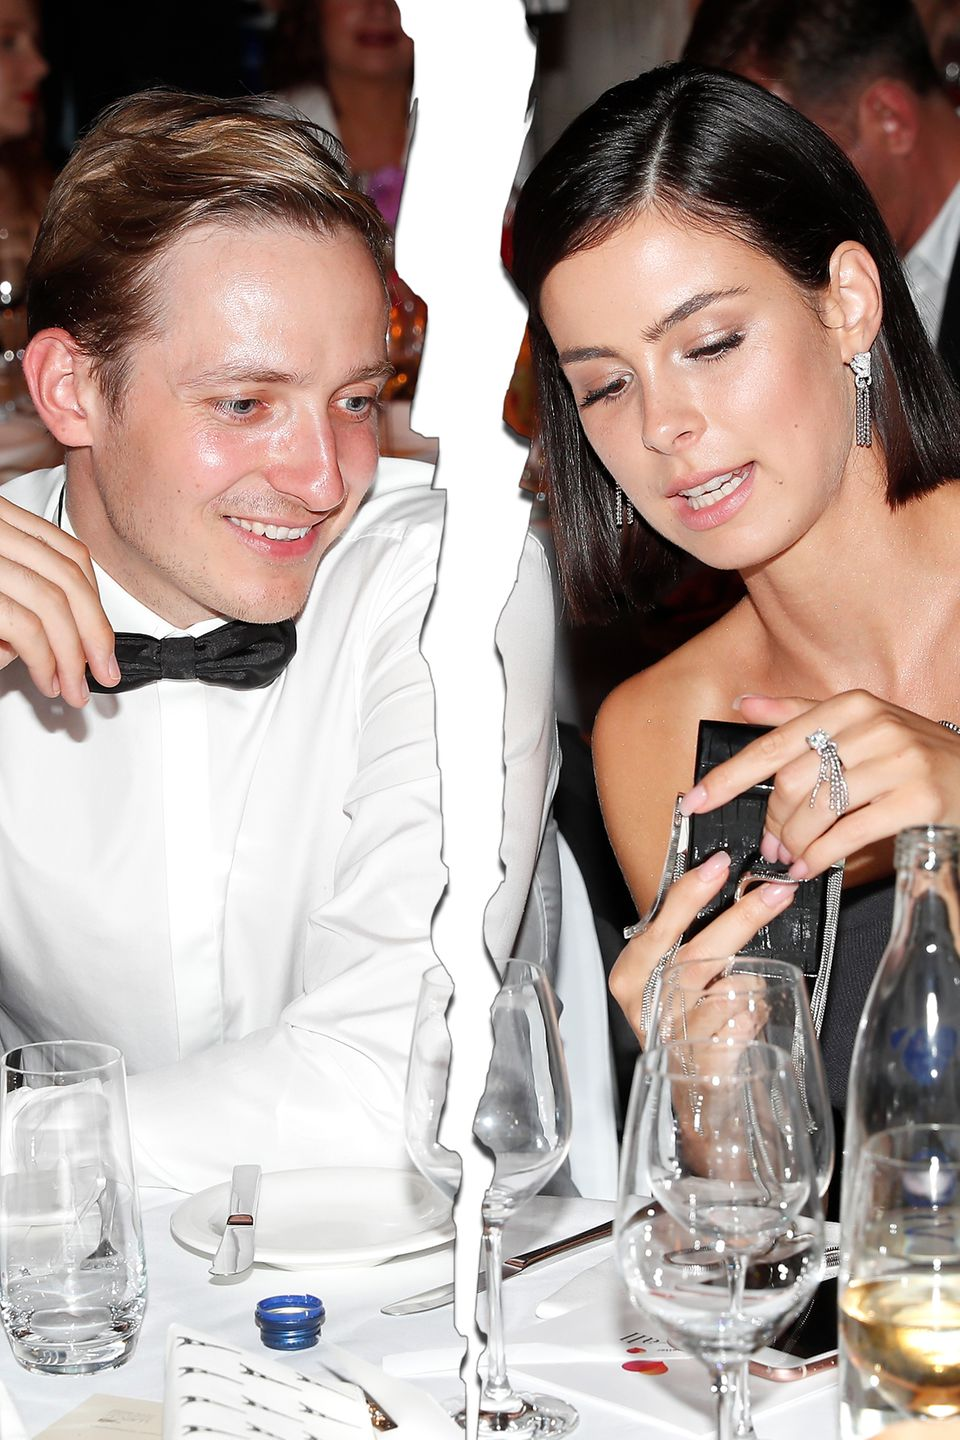 Max von Helldorff and Lena Meyer-Landrut